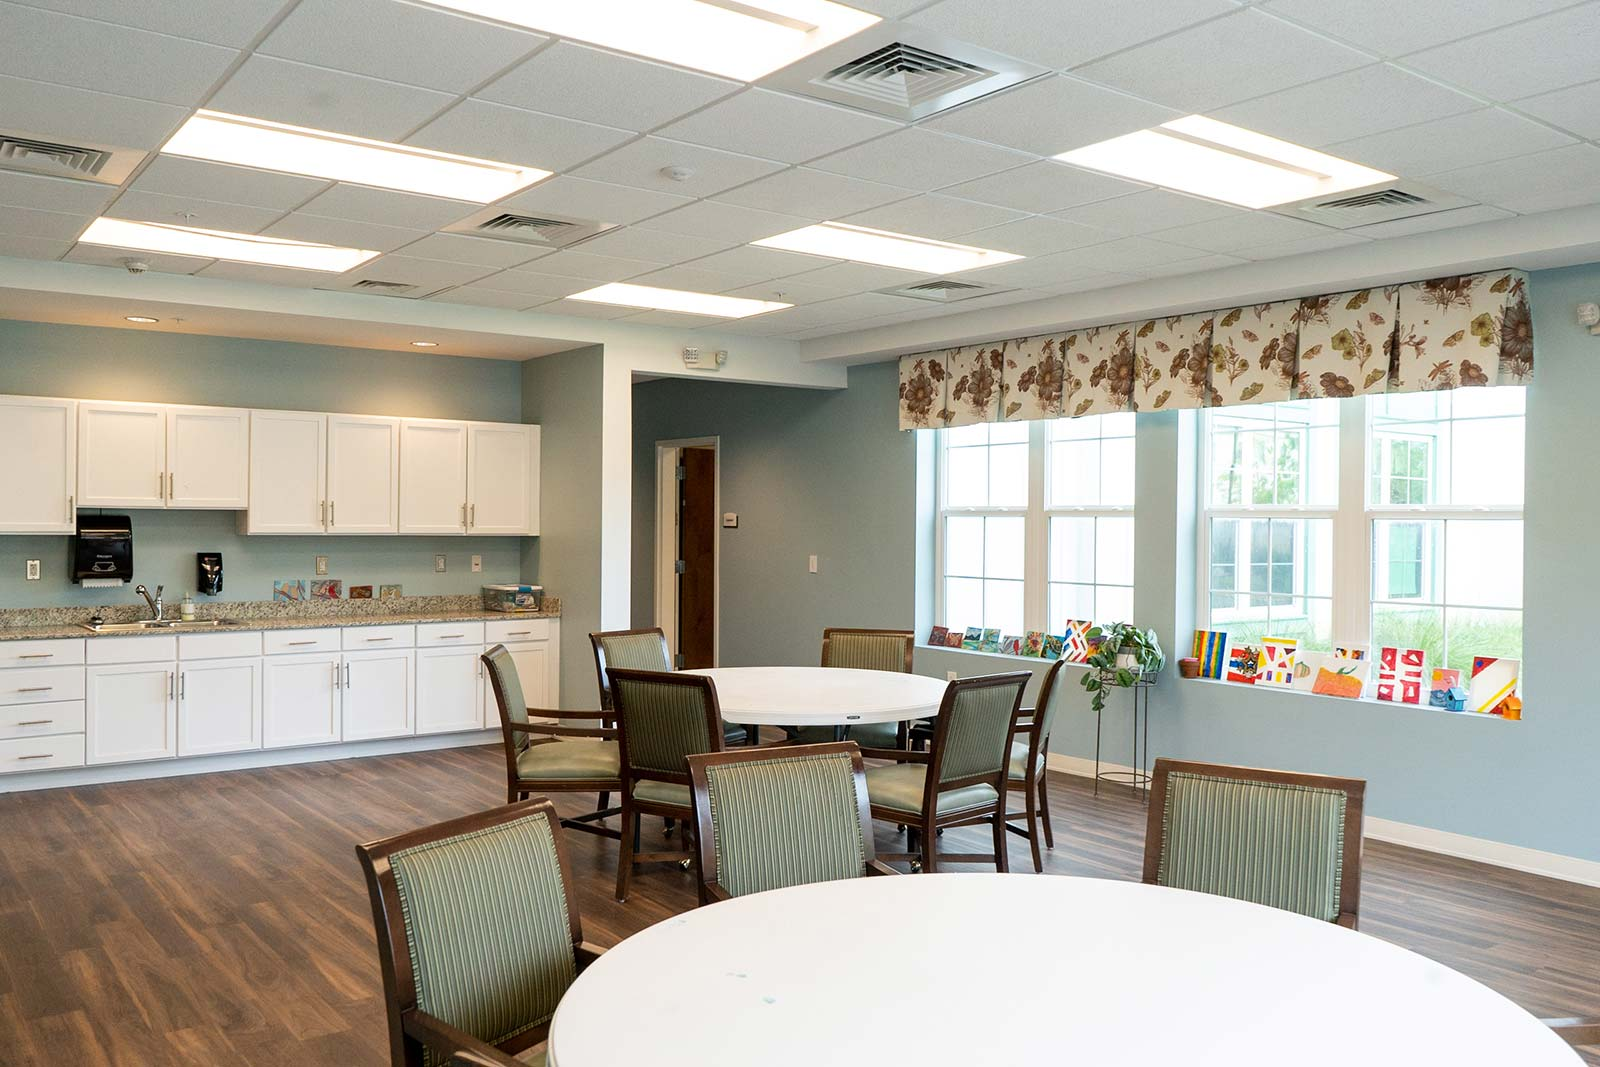 Arts and crafts room at The Arbors of Gulf Breeze in Gulf Breeze, FL